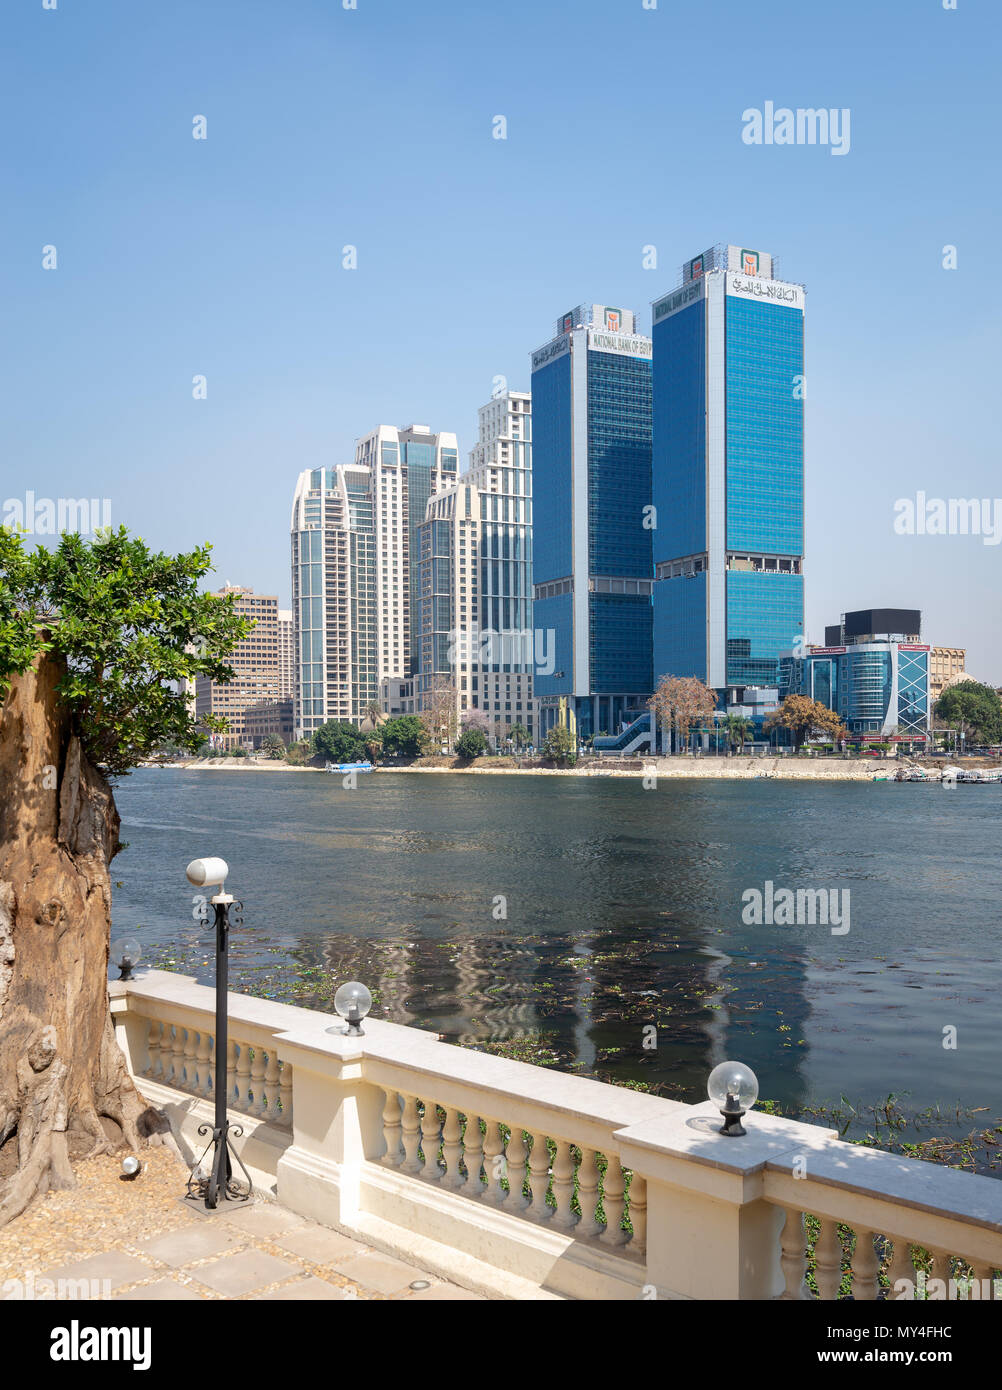 Cairo, Egypt - March 10, 2018: City view from River Nile overlooking Head Office of National Bank of Egypt and St. Regis hotel, Egypt - Stock Image